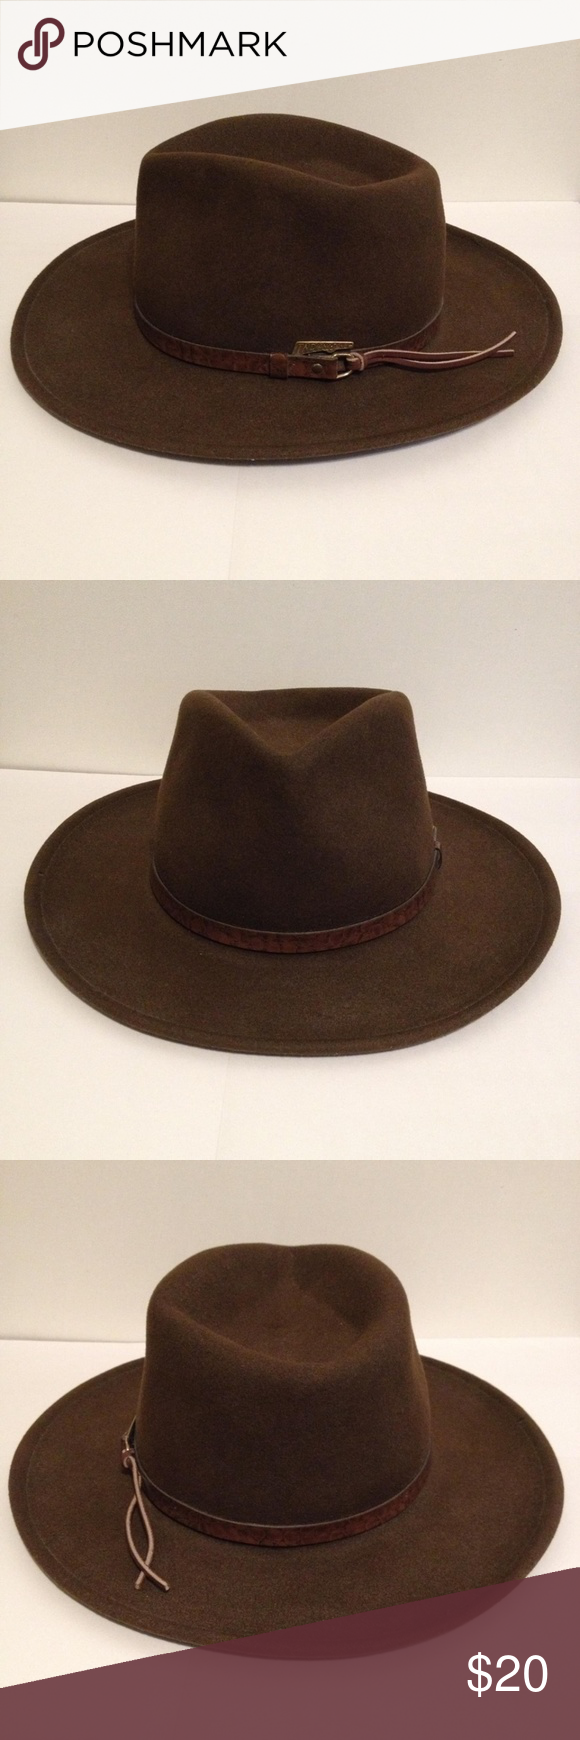 Indiana Jones Brown Fedora Wool Hat Small In Good Condition Just A Small Blemish Shown In 5th Photo Please See All Photos And Wool Hat Fedora Indiana Jones